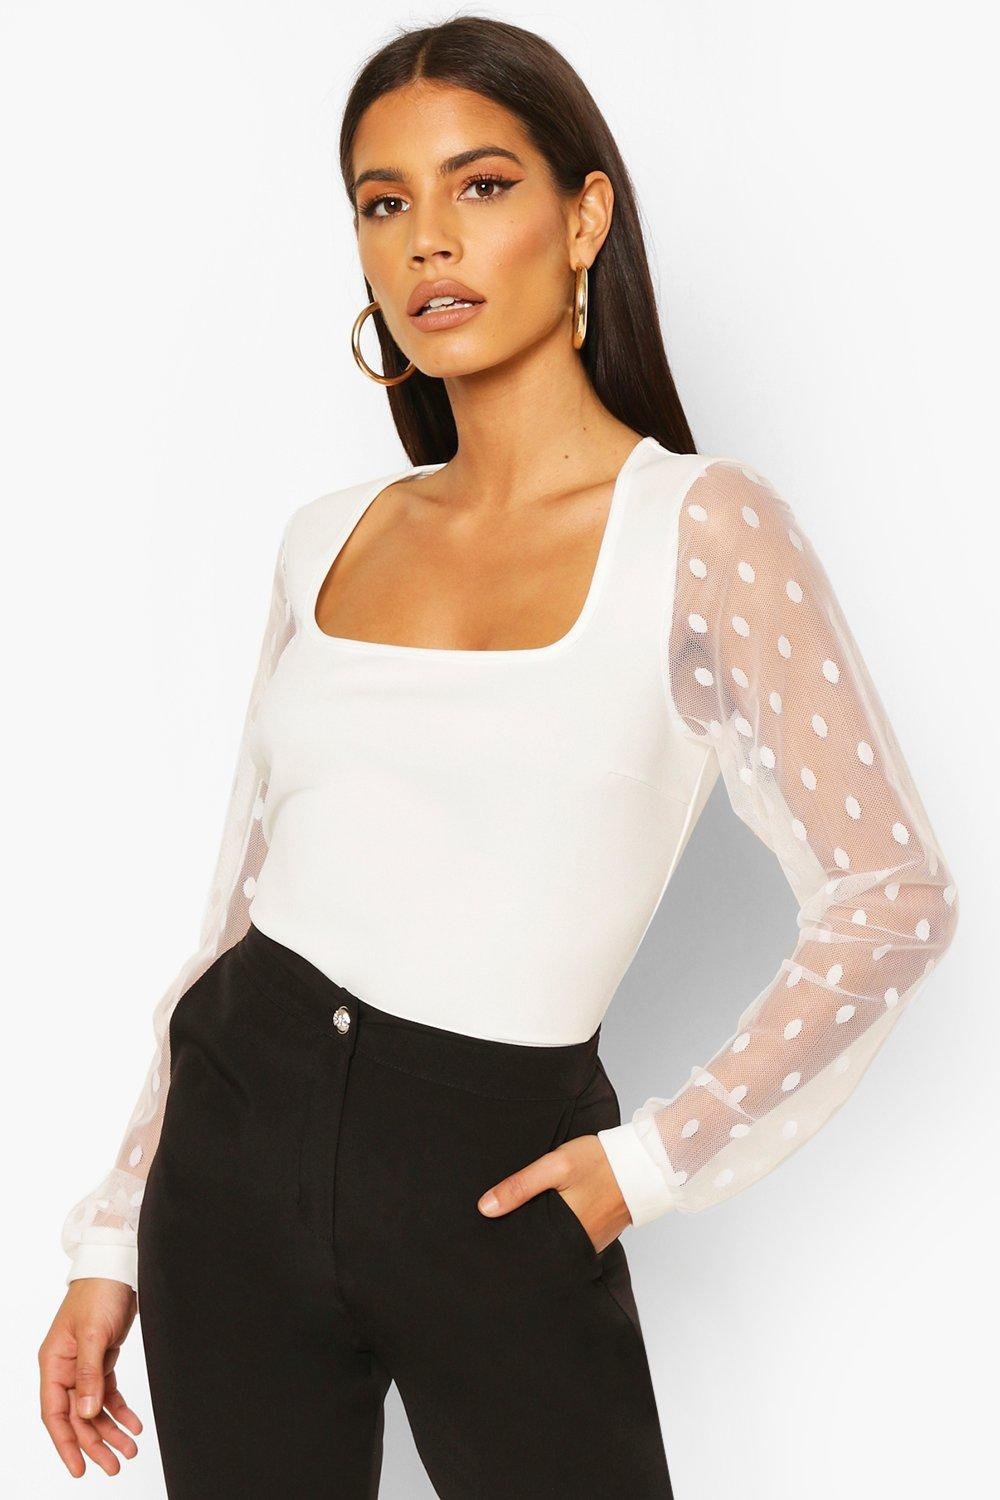 boohoo Womens Polka Dot Mesh Sleeve Square Neck Bodysuit - White - 10, White